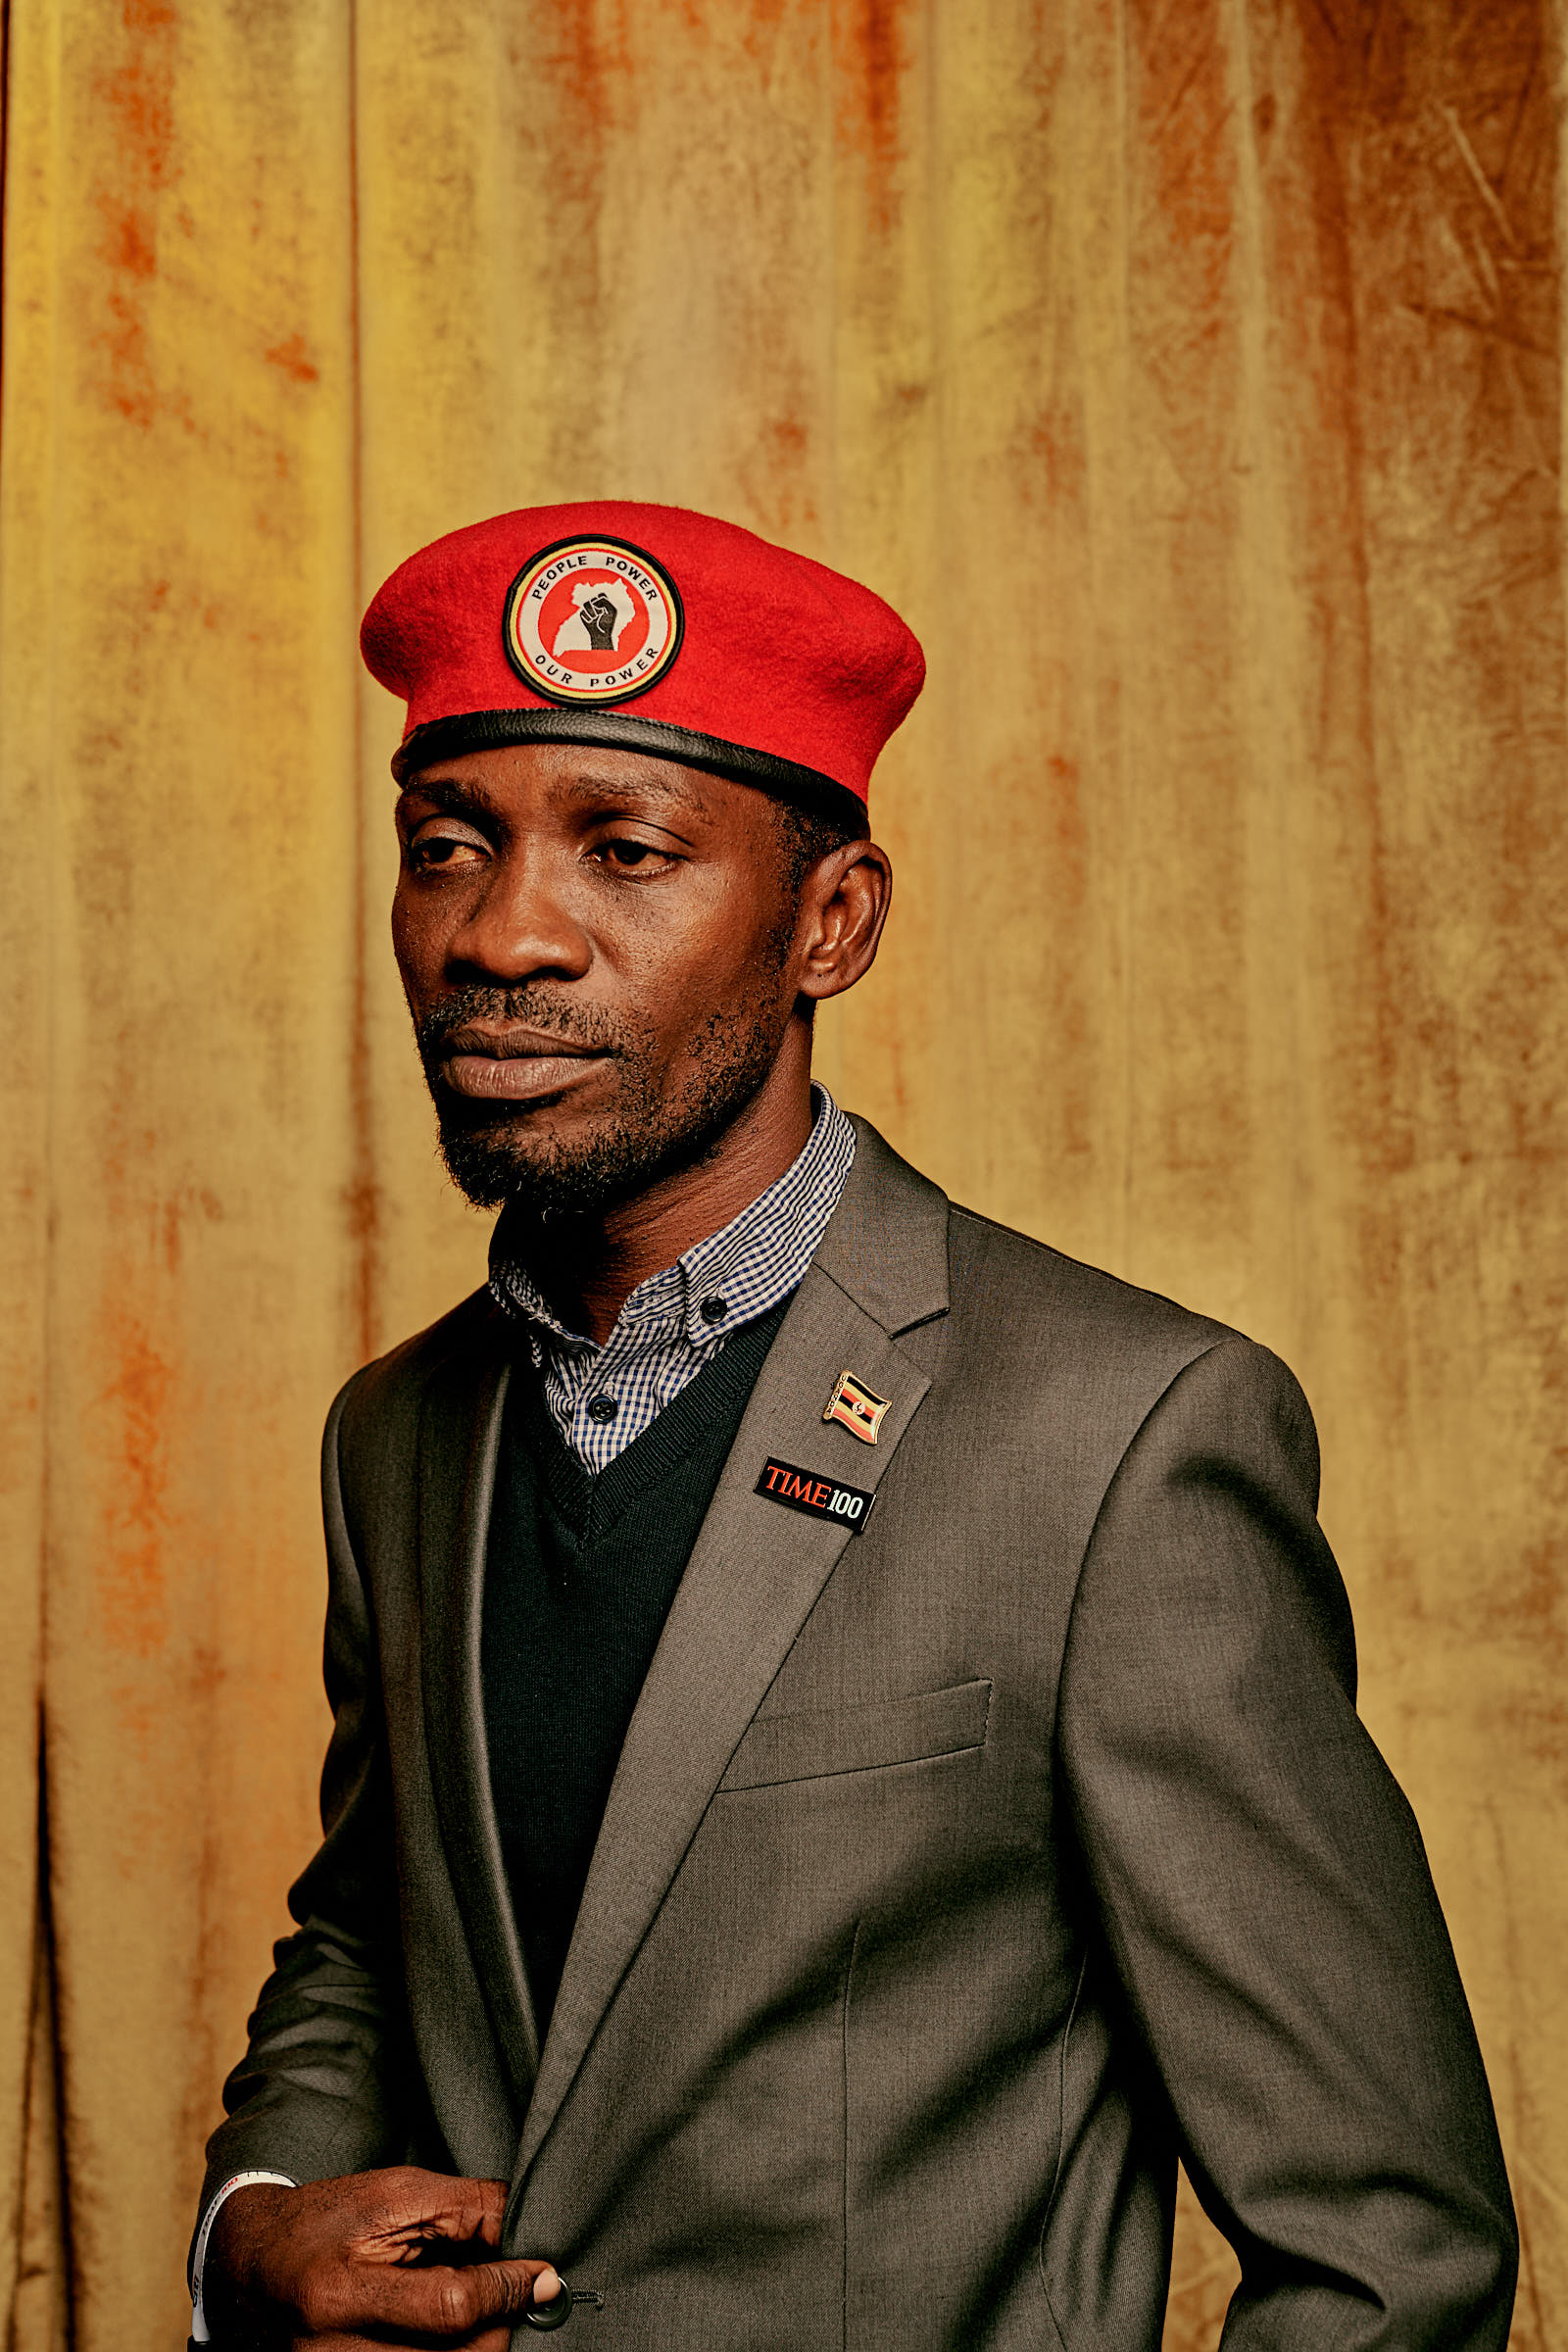 Bobi Wine, Ugandan Politician, businessman, philanthropist, musician, and actor attends the TIME 100 Next event at Pier 17 in New York on Nov. 14, 2019.